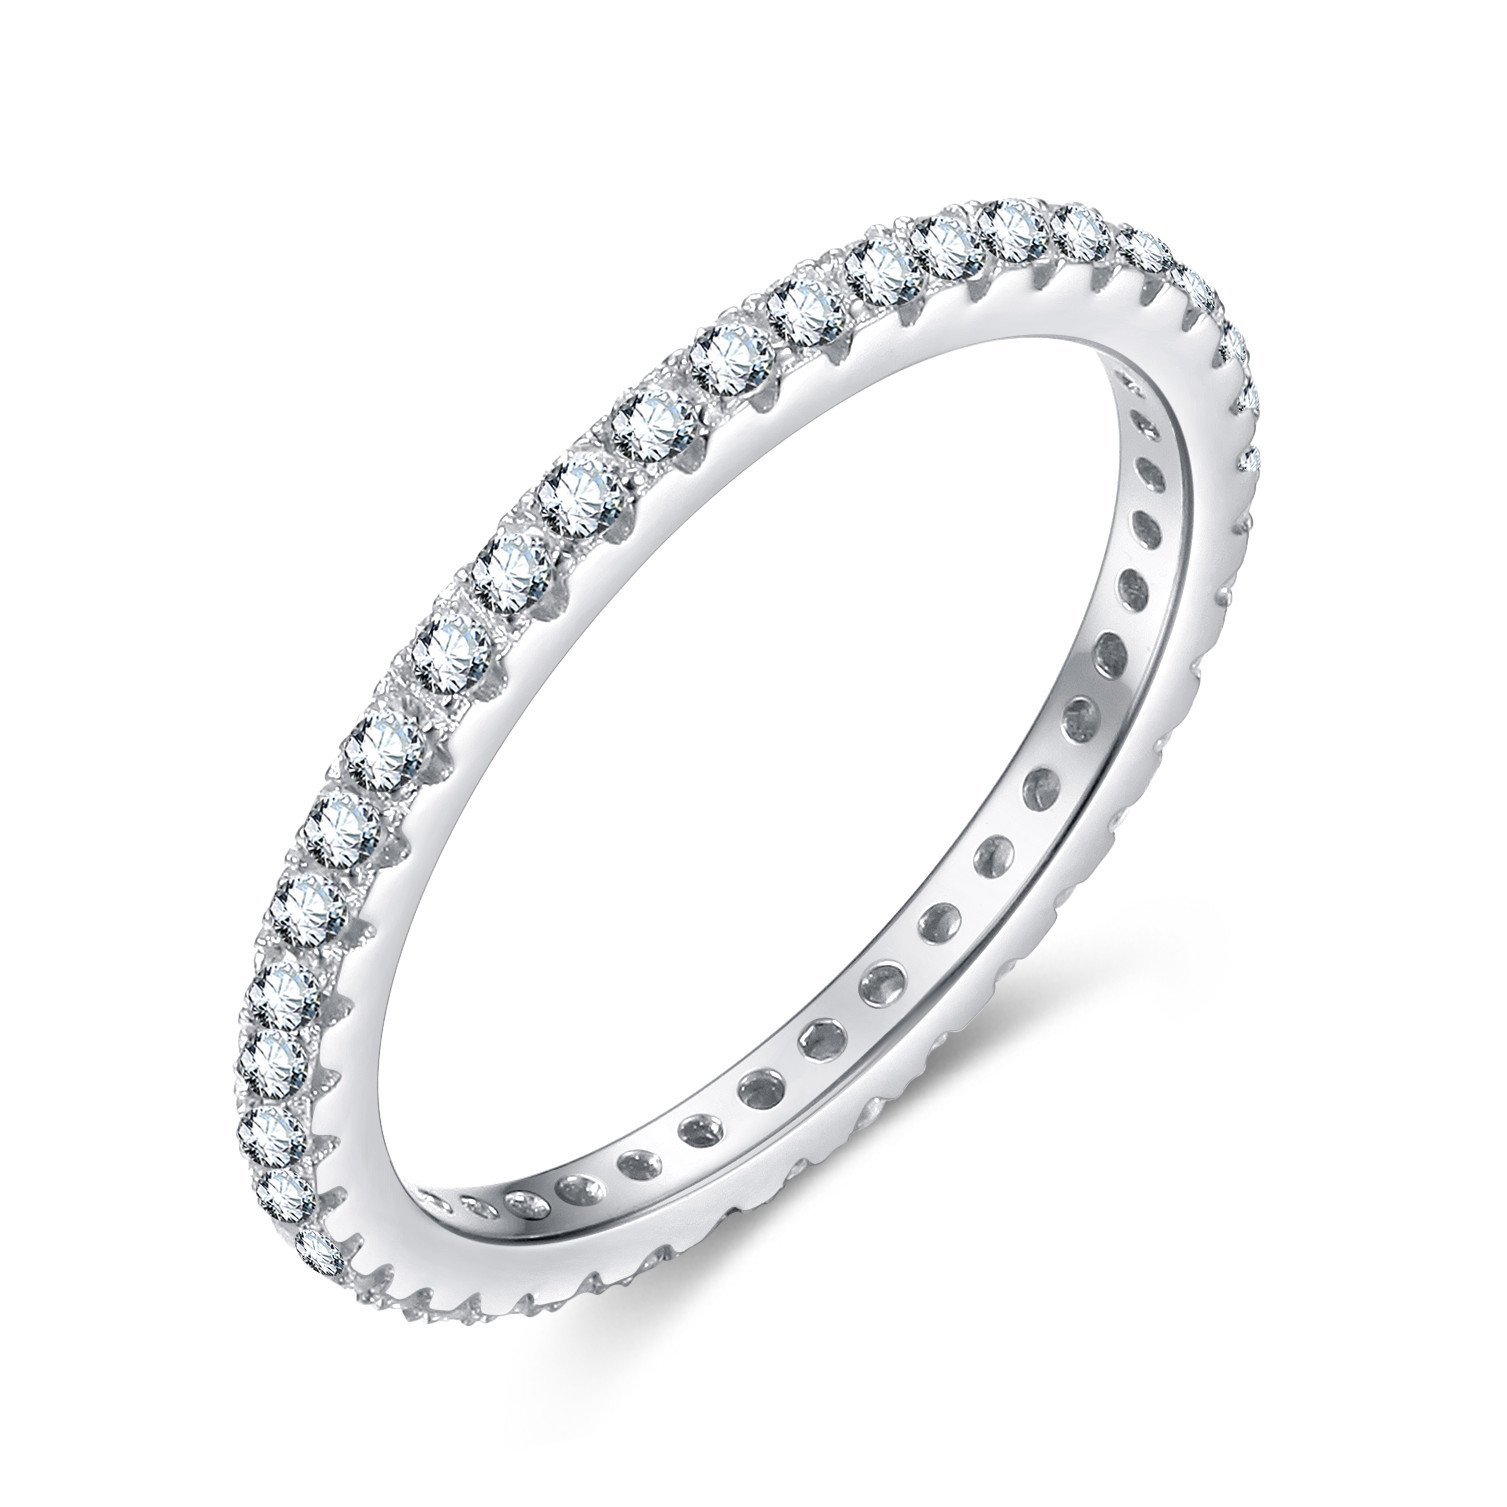 EAMTI 925 Sterling Silver Wedding Band Cubic Zirconia Stackable Eternity Engagement Ring Size 7